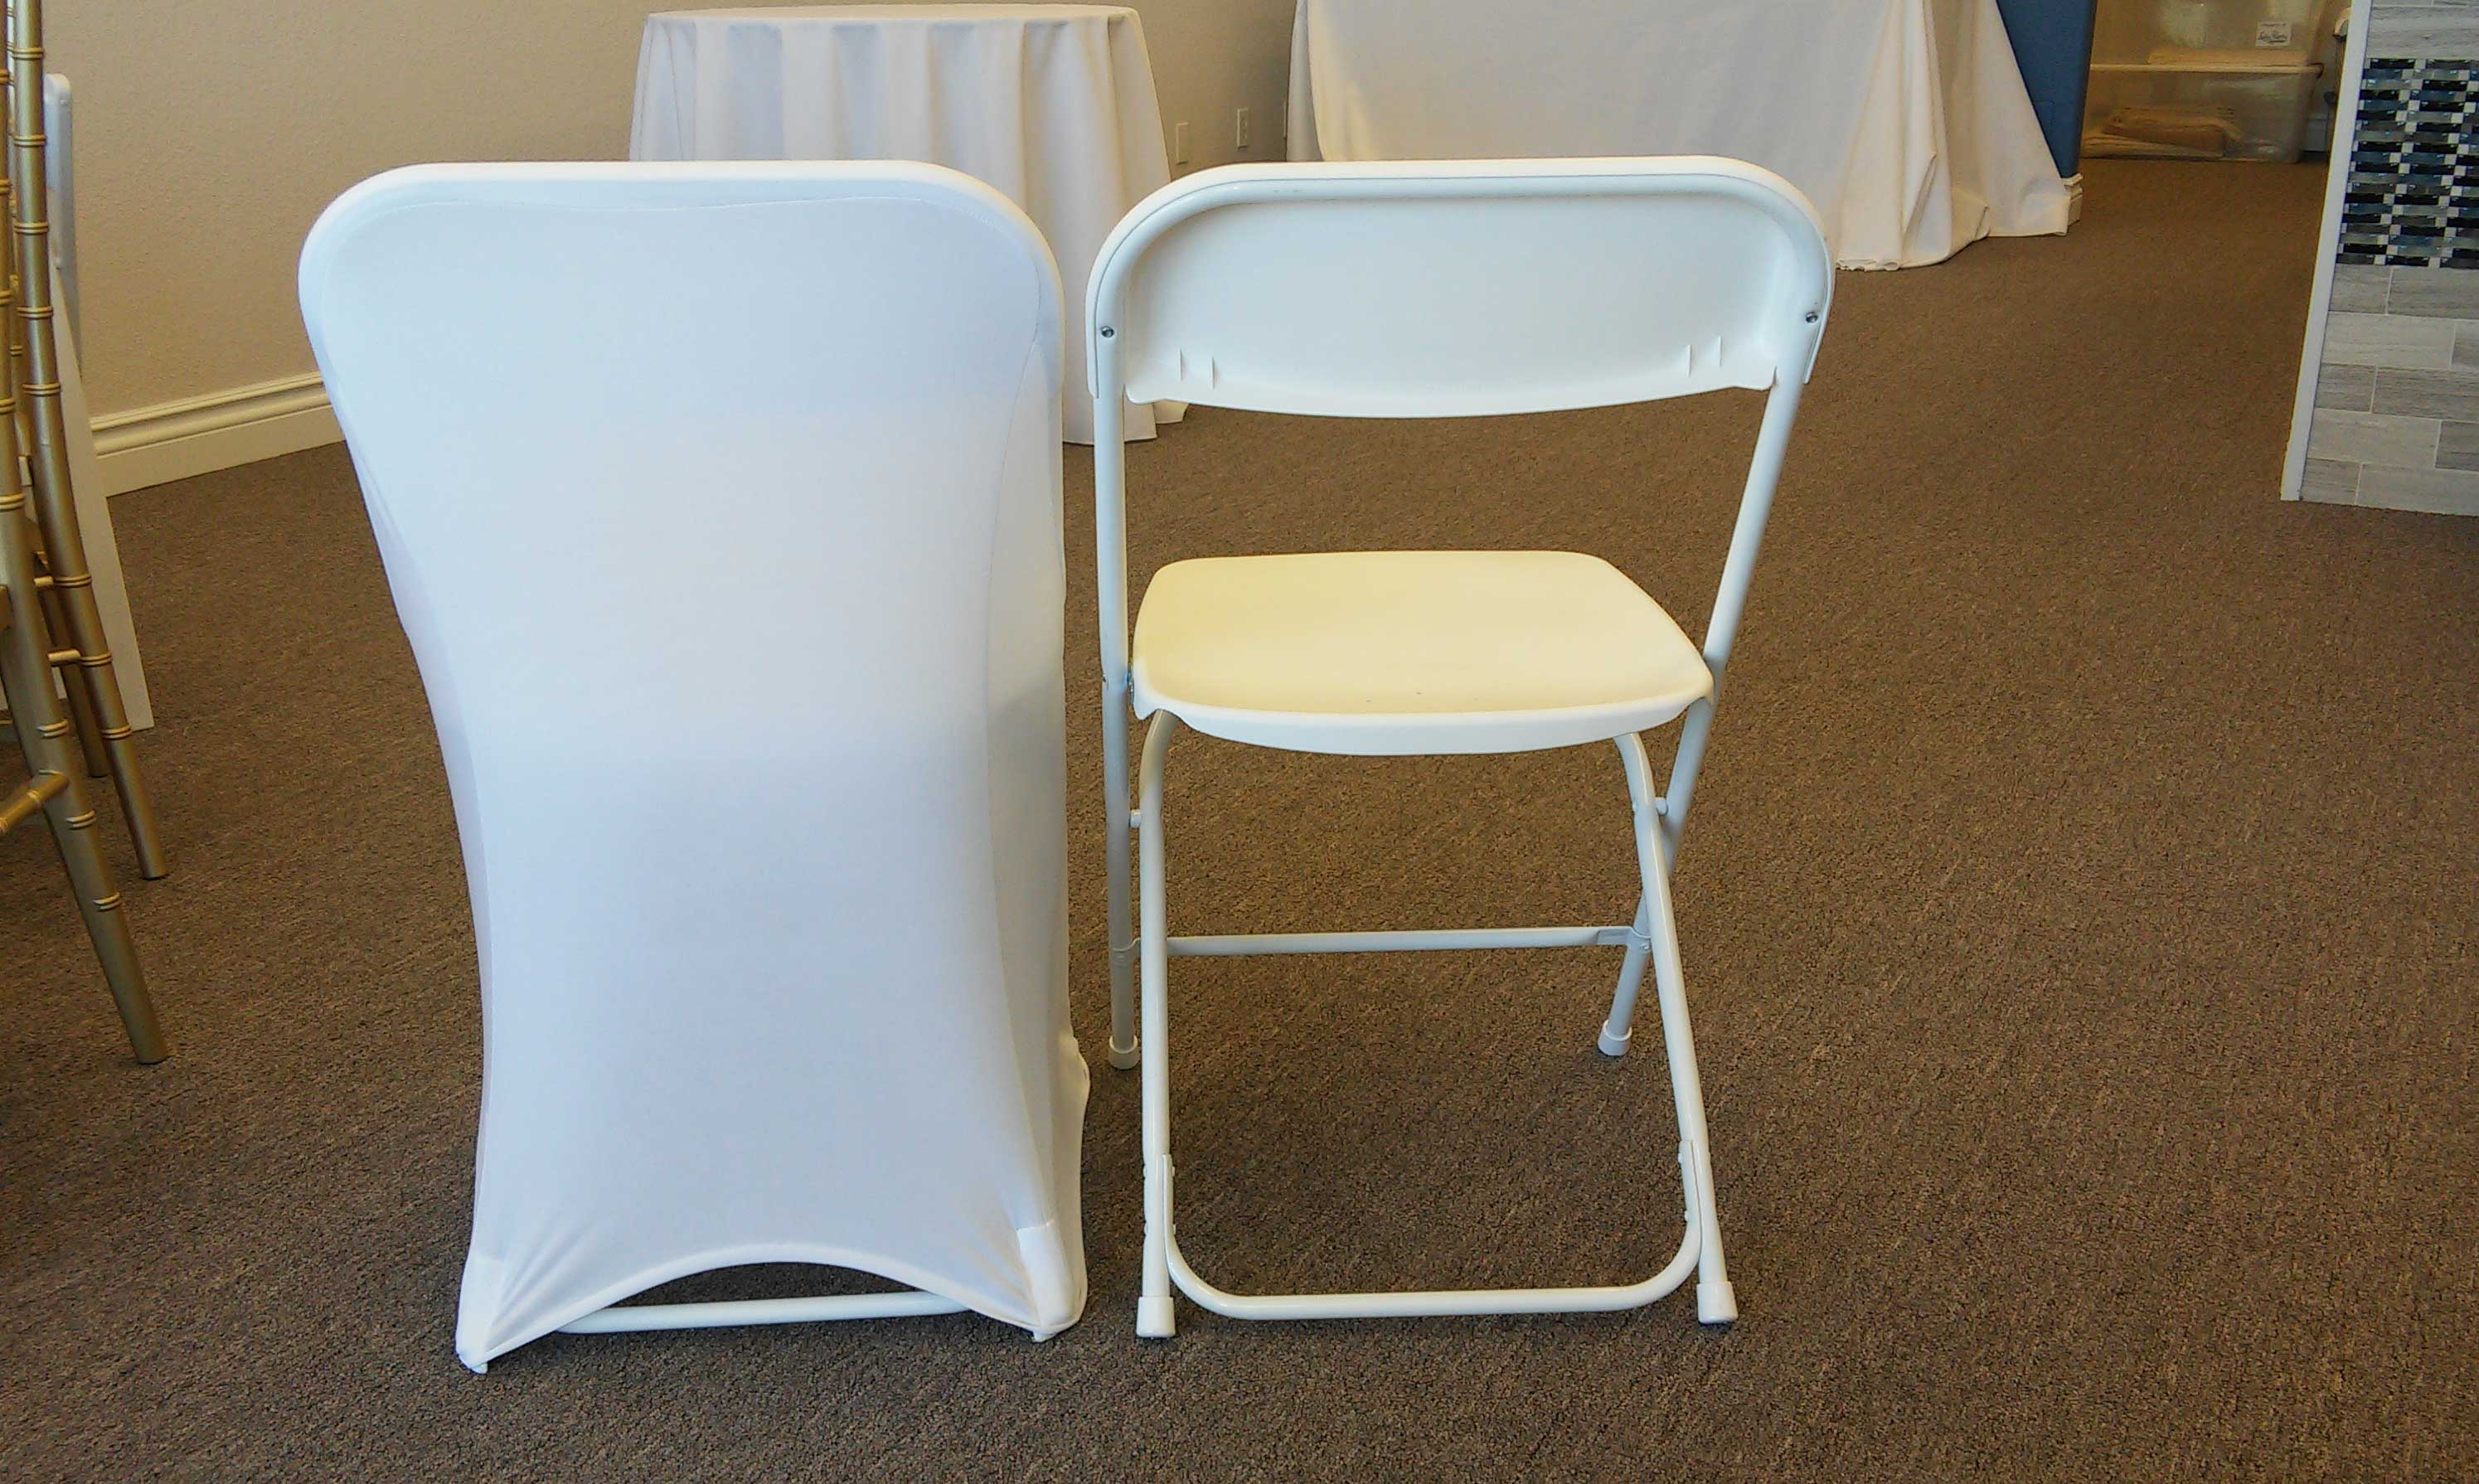 Fashionable chair covers for folding chairs chair covers, rent, spandex, folding chair, lake of the ozarks, missouri nyumels